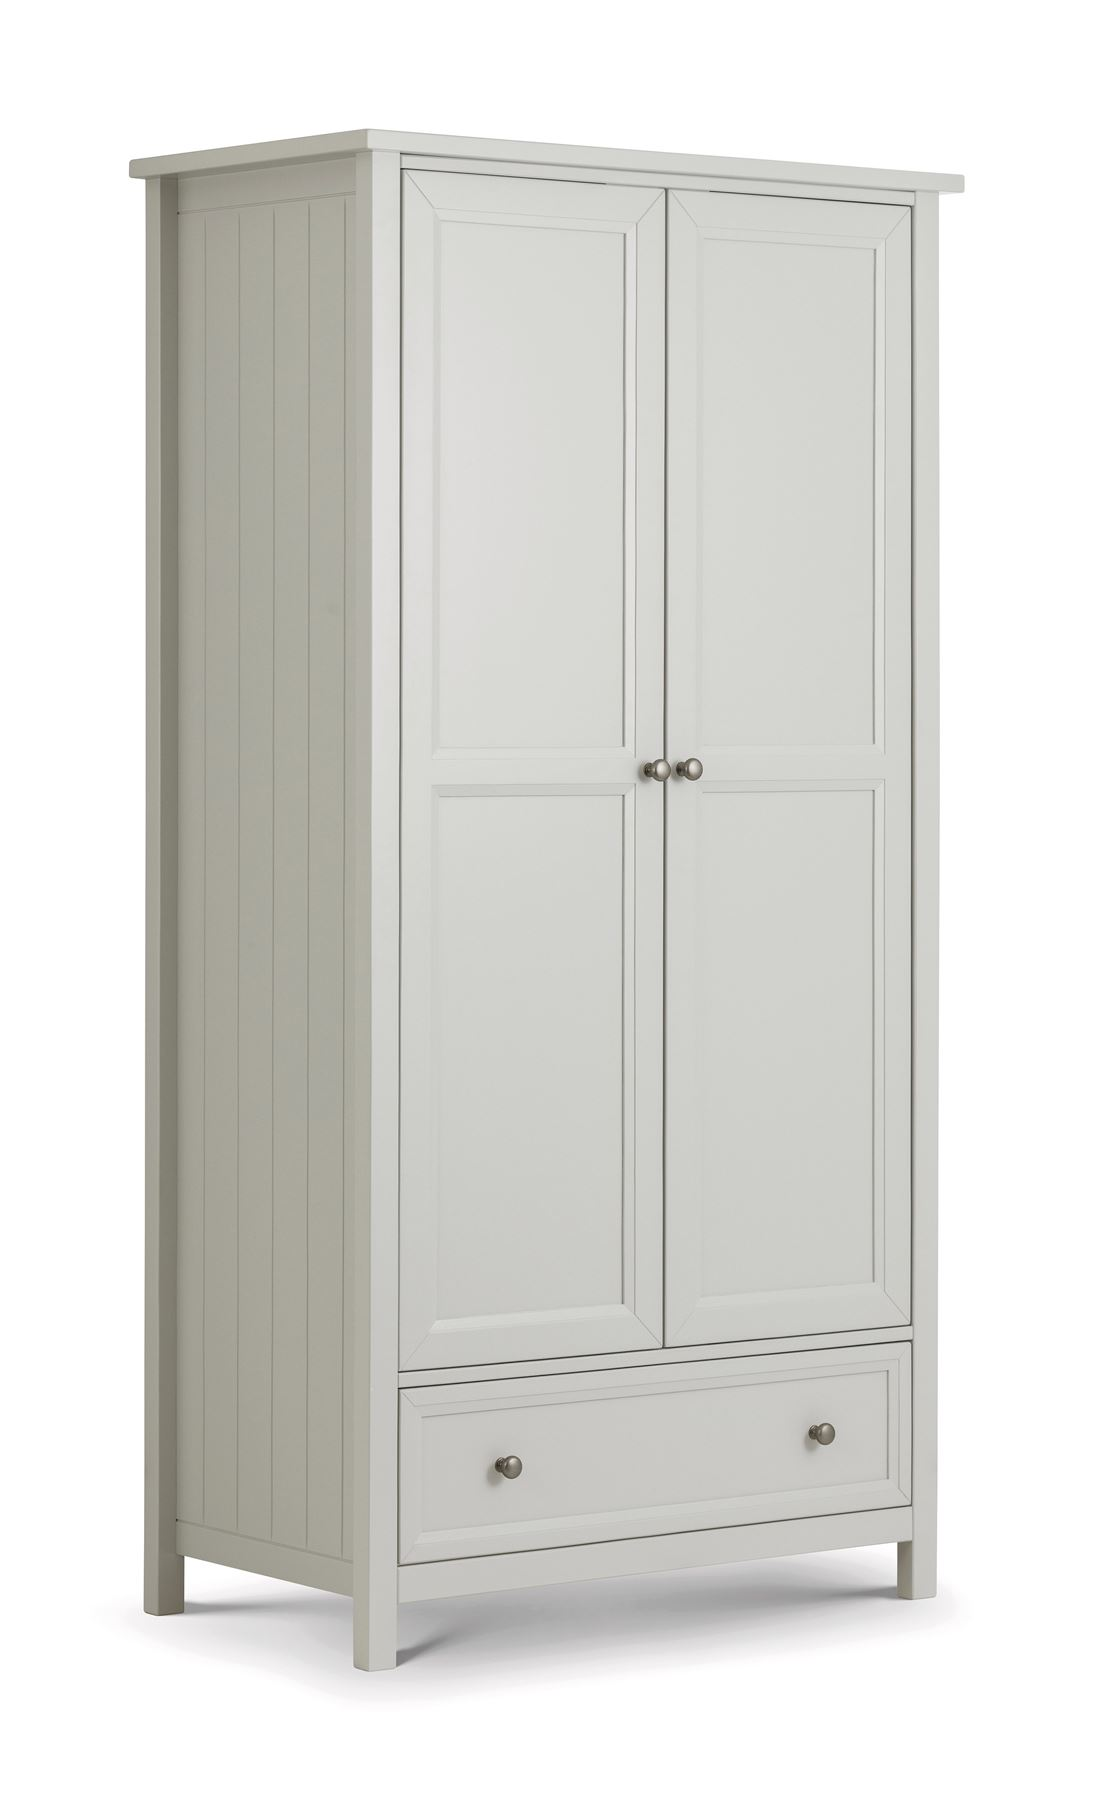 Julian Bowen Maine New England 2 Door Combination Wardrobe Painted Dove Grey